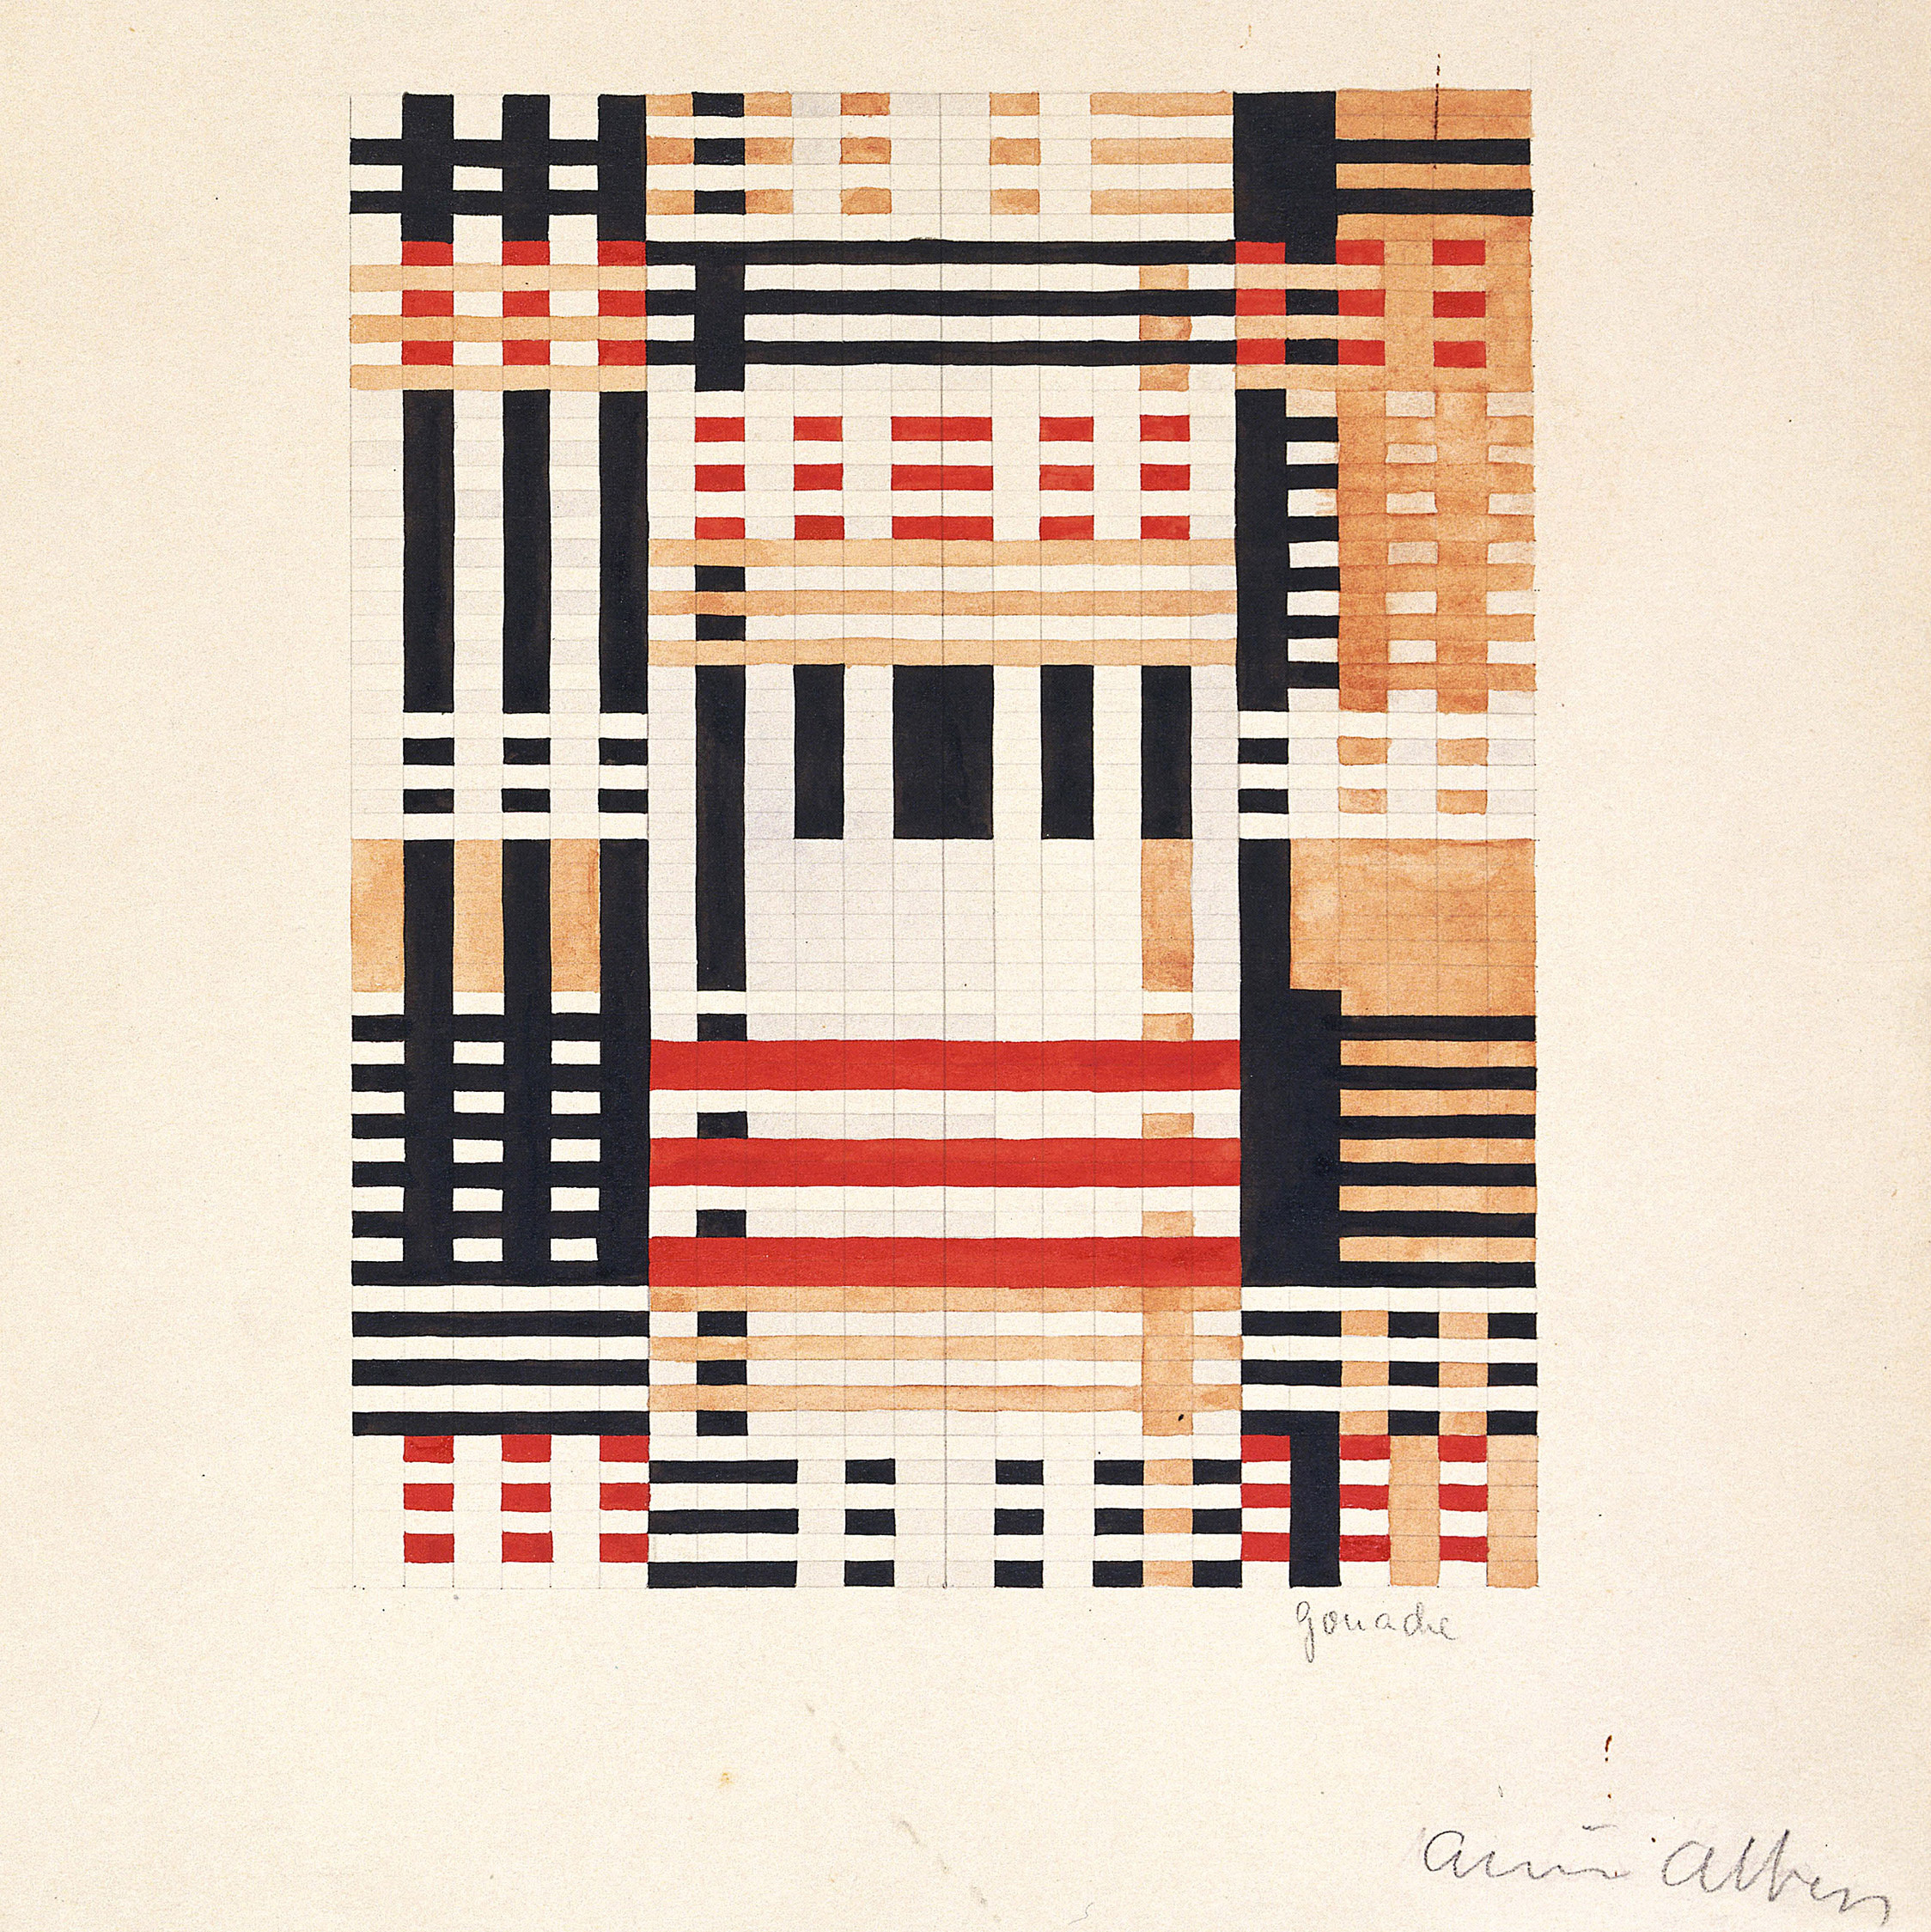 Image courtesy of the Josef and Anni Albers Foundation/Artists Rights Society (ARS), New York/DACS, London